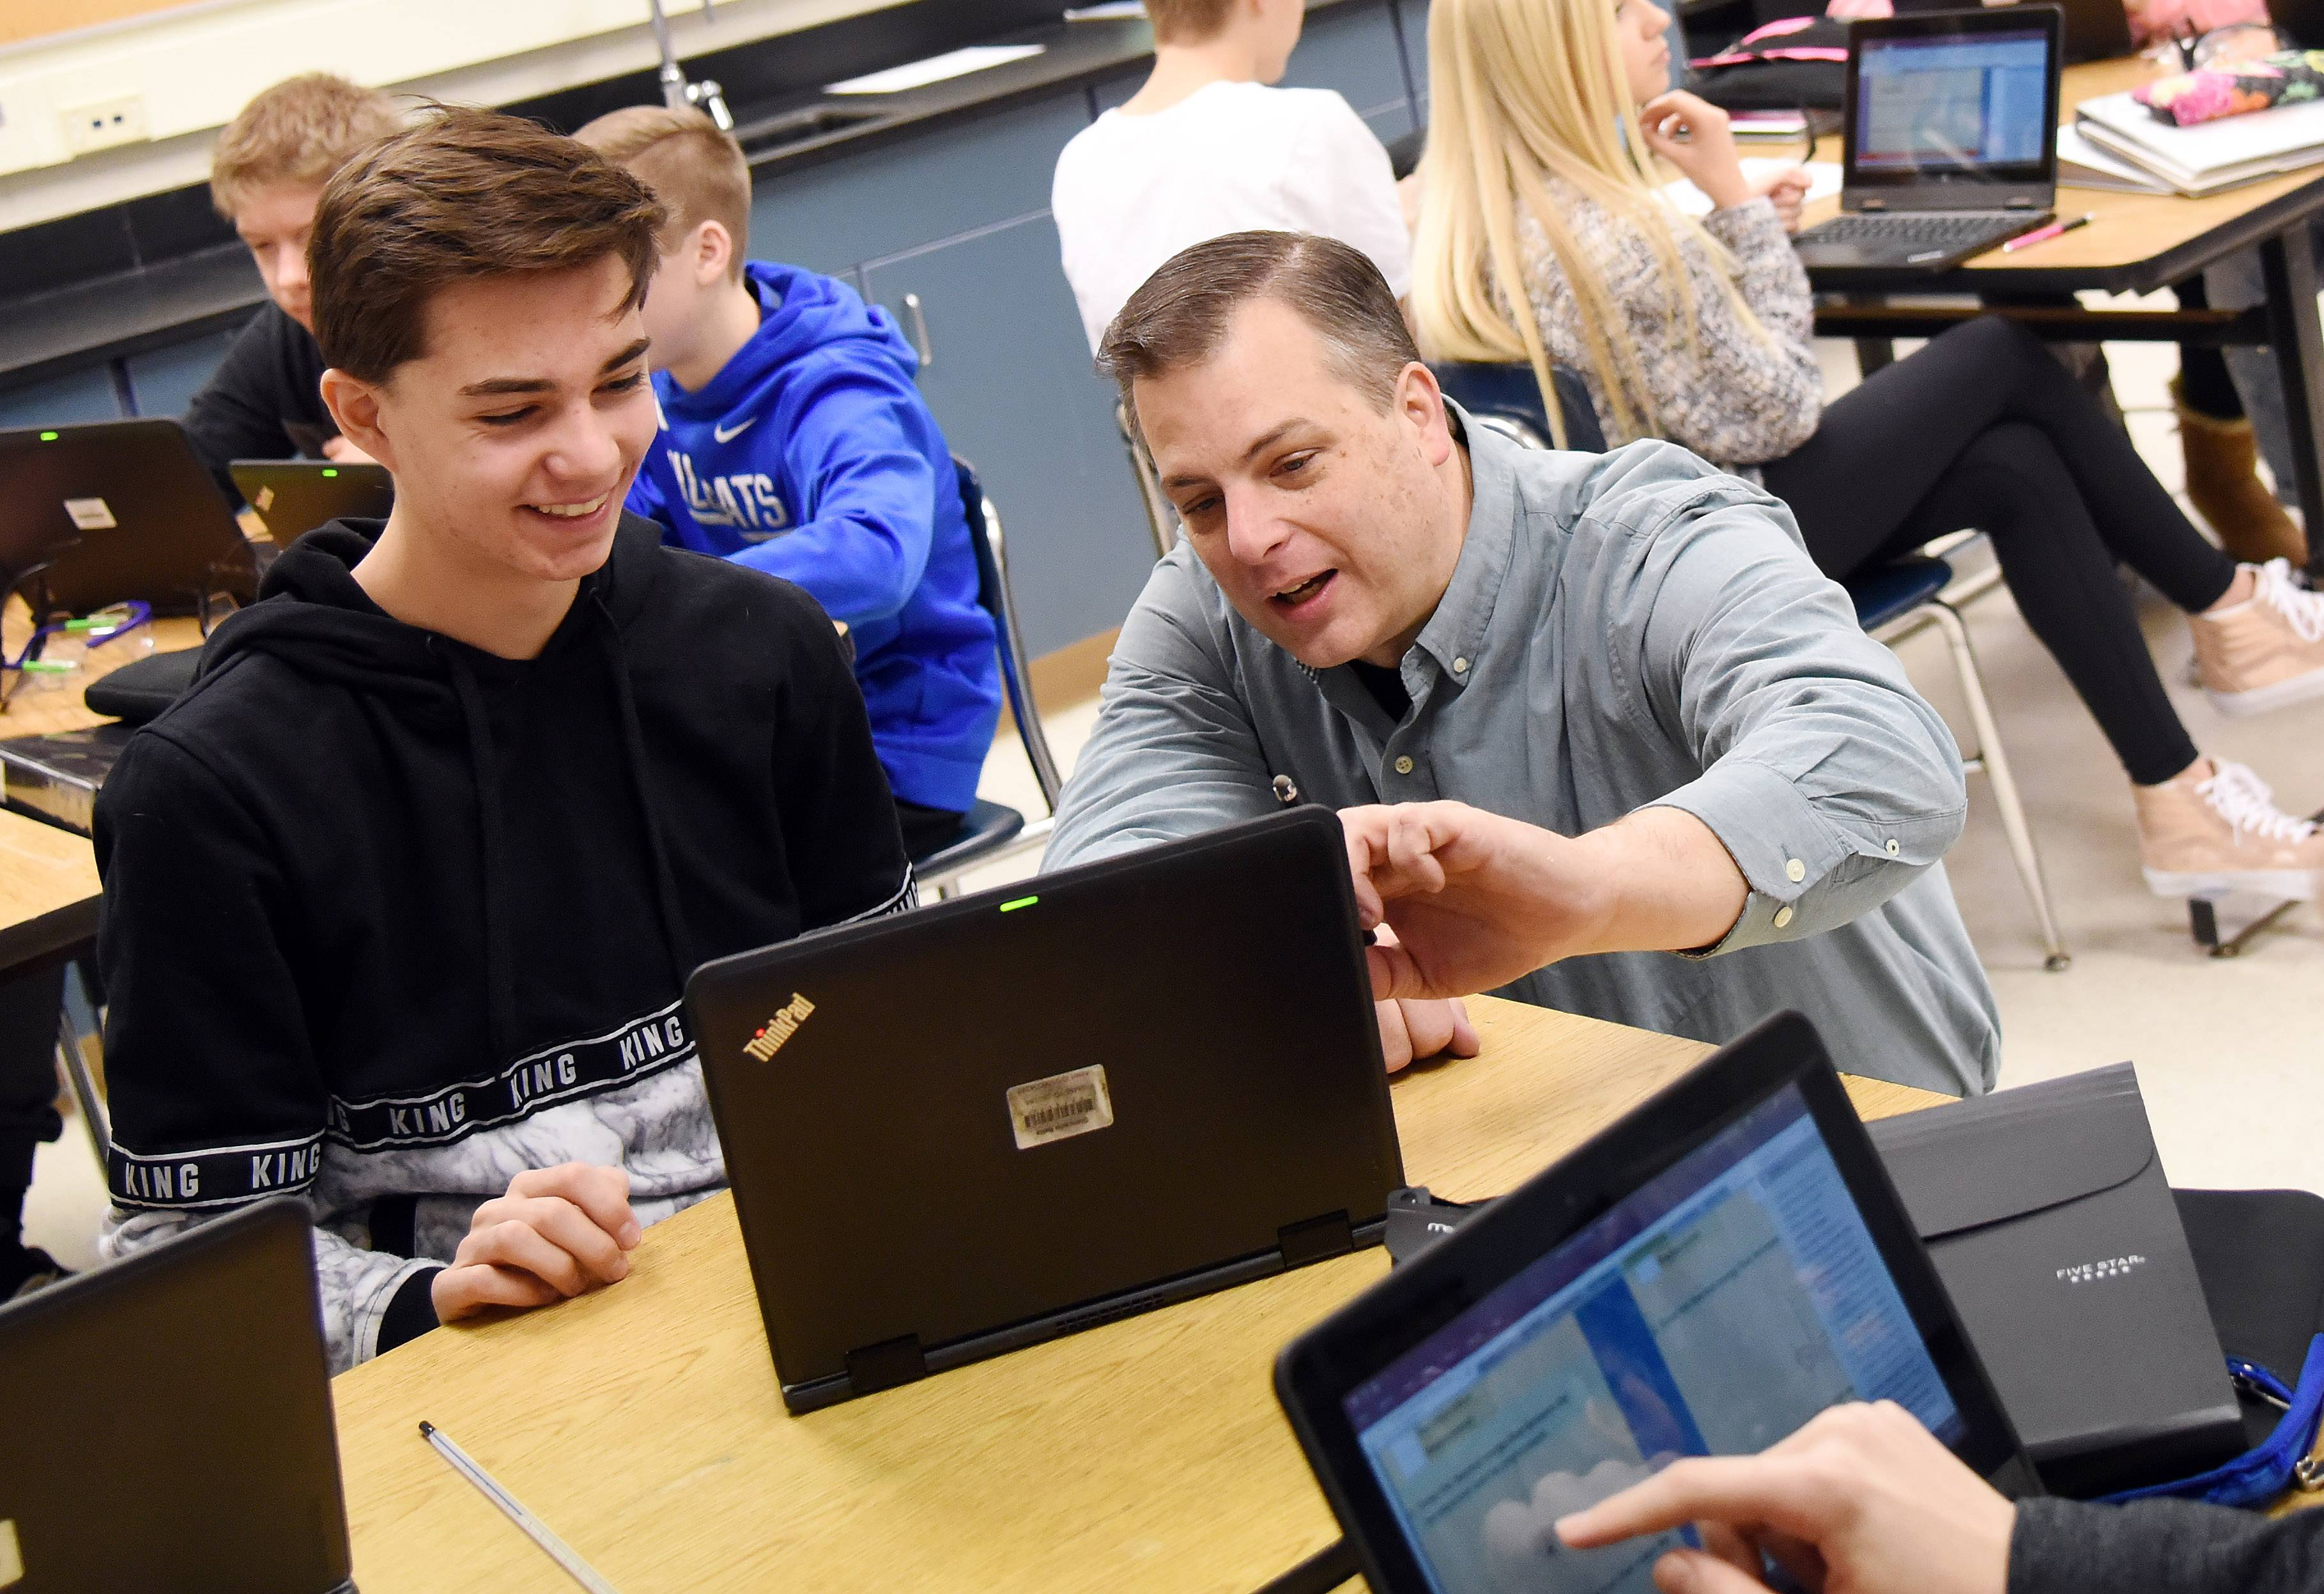 Science teacher Matt Gain works with eighth-grader Giancarlo Rella during class. Gain has taught chemistry and physics at Geneva Middle School South for 17 years and was named the Kane County Educator of the Year in 2017.